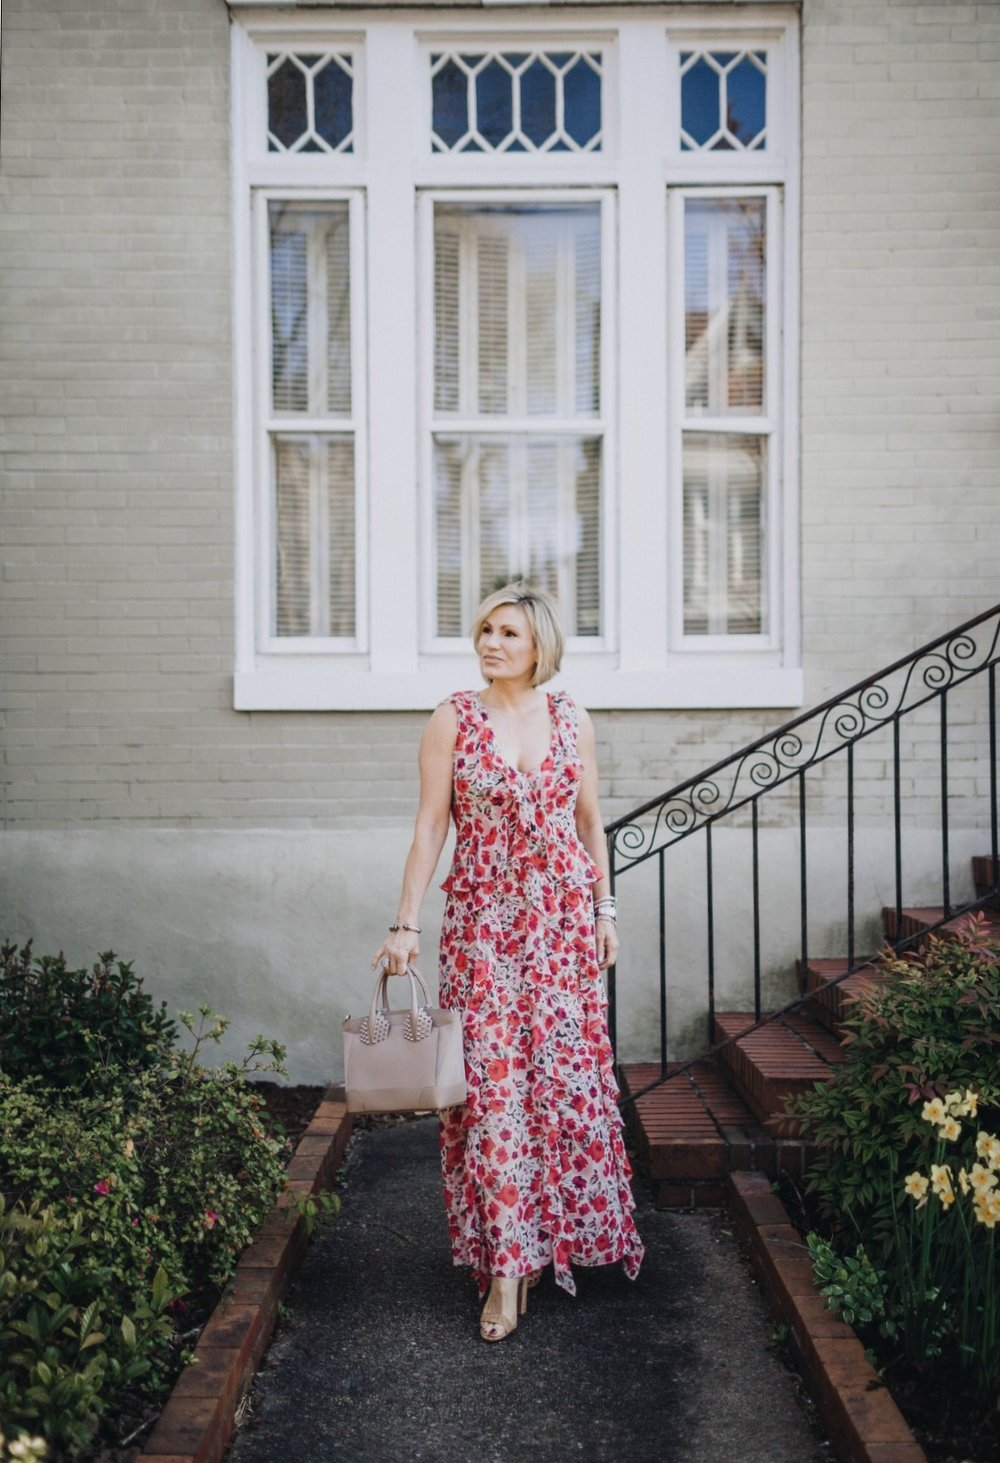 """I call this the """"elegant maxi"""" and can be worn confidently to anything from a pool party to wedding. This embodies comfort and style. Shop this look:  21buttons.com/p/18546848"""